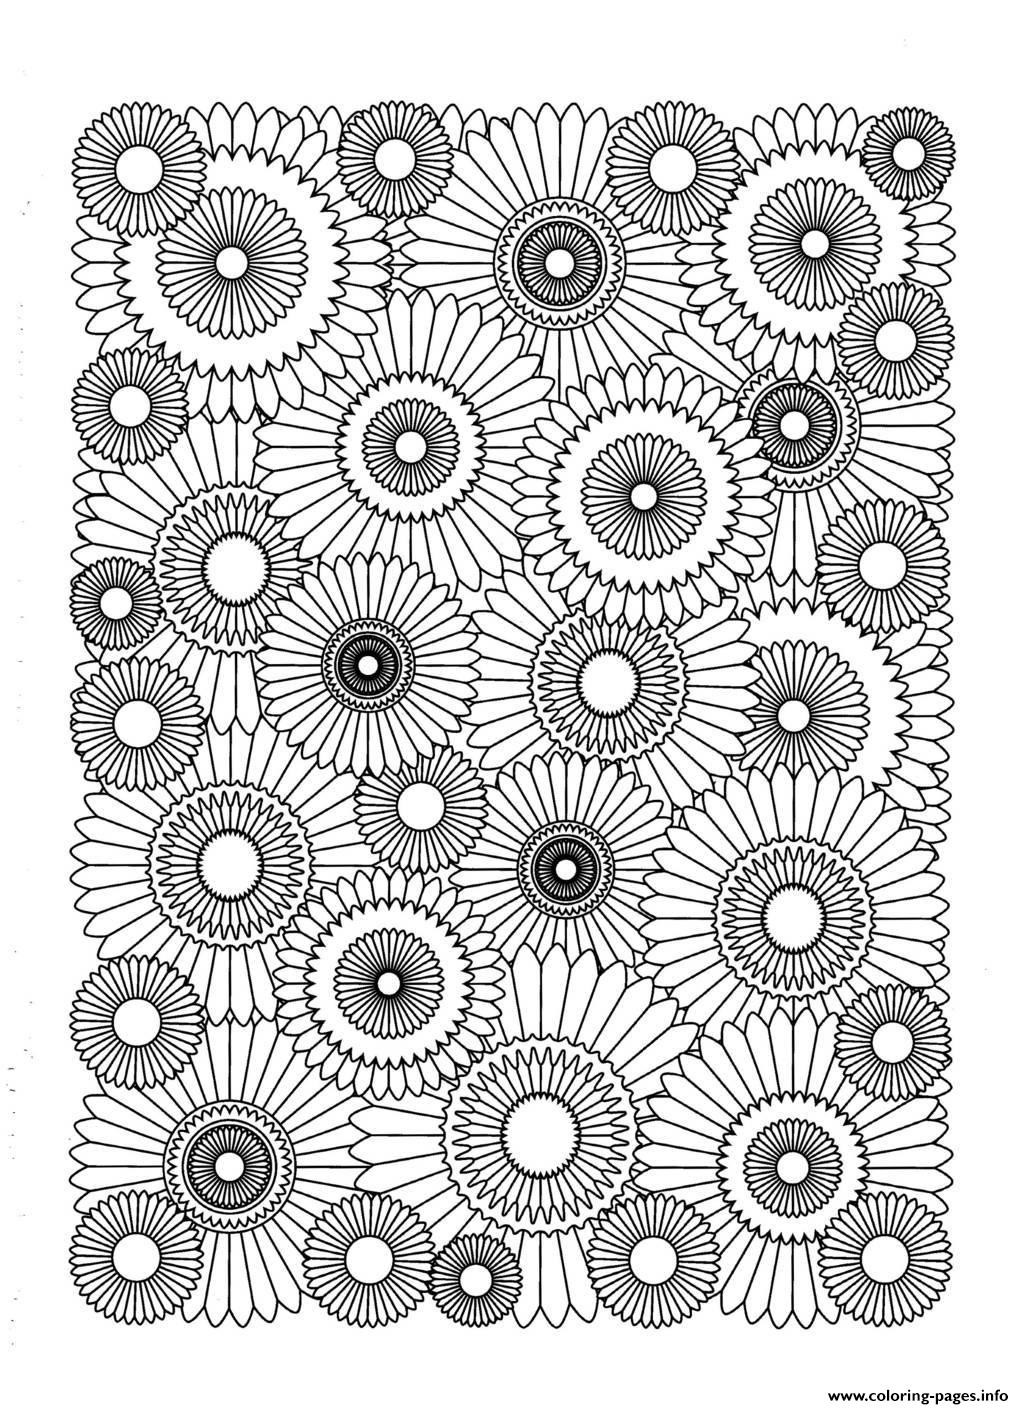 Sunflower Coloring Pages For Adults  Adult Sunflower Coloring Pages Printable